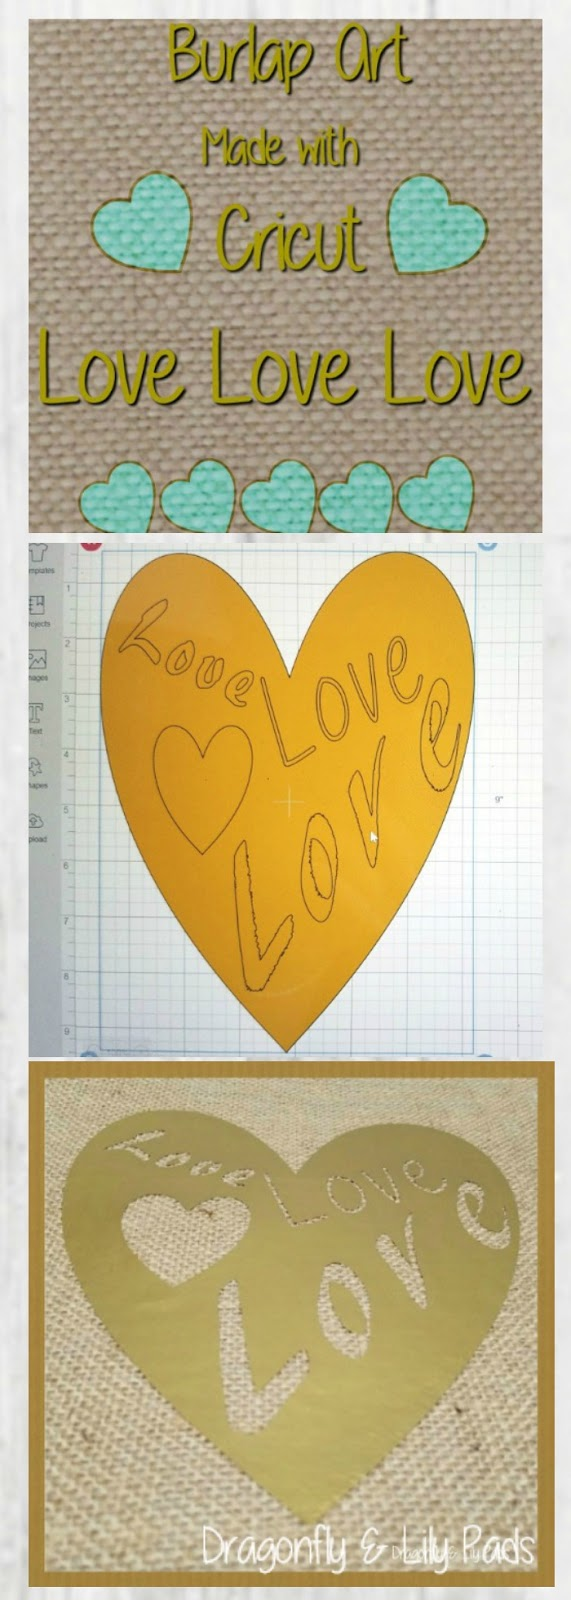 Burlap Art made with Cricut Maker Heart shape with Love Love Love